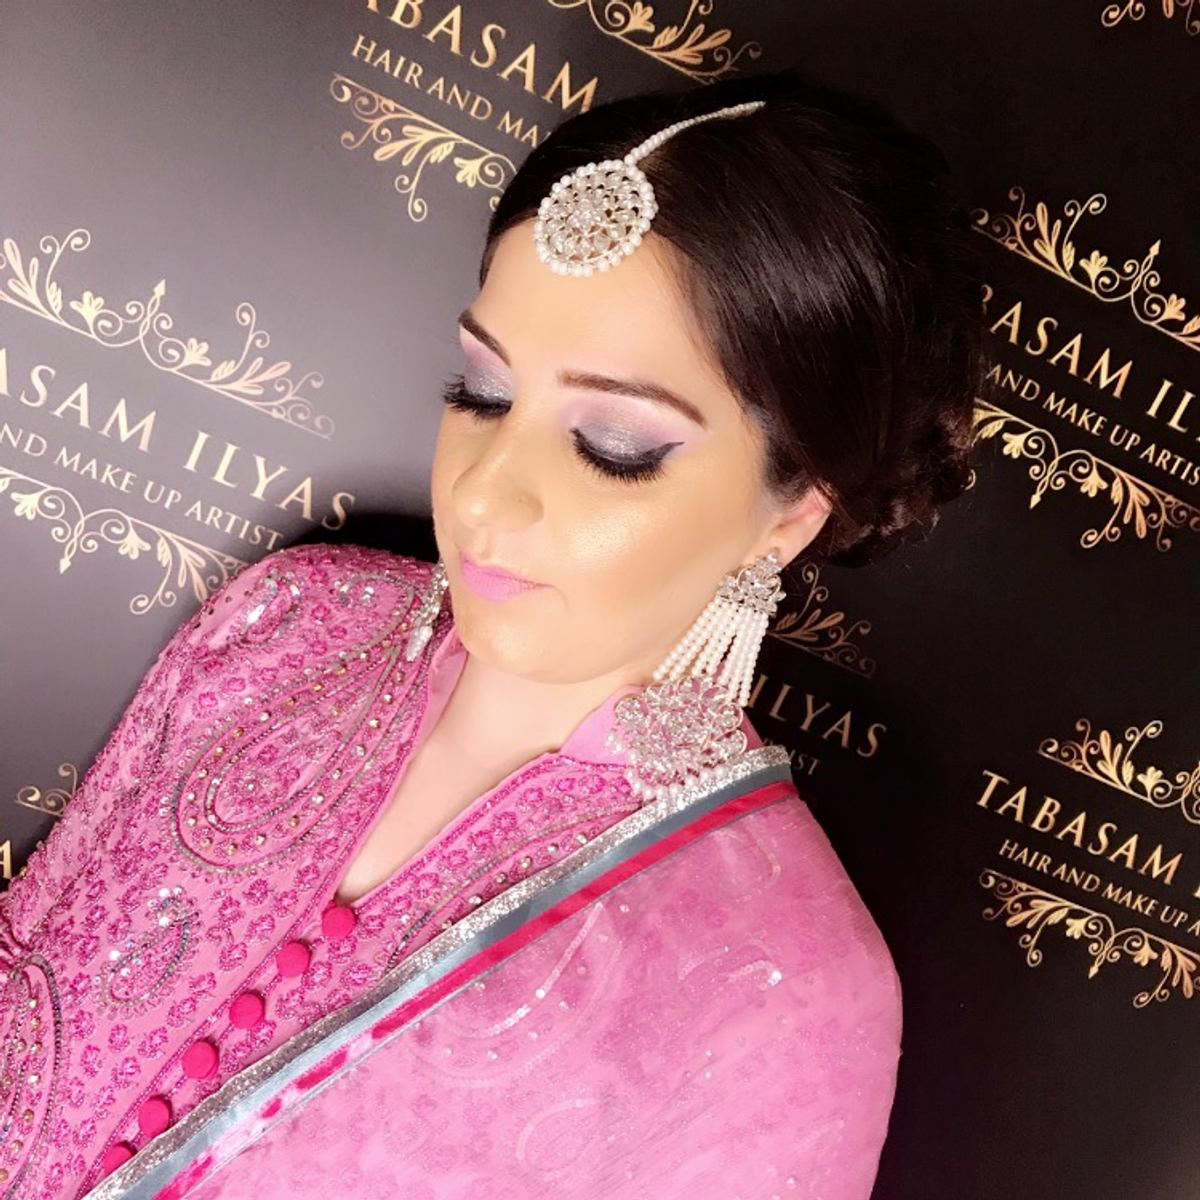 professional hair and makeup artist in wv1 wolverhampton for